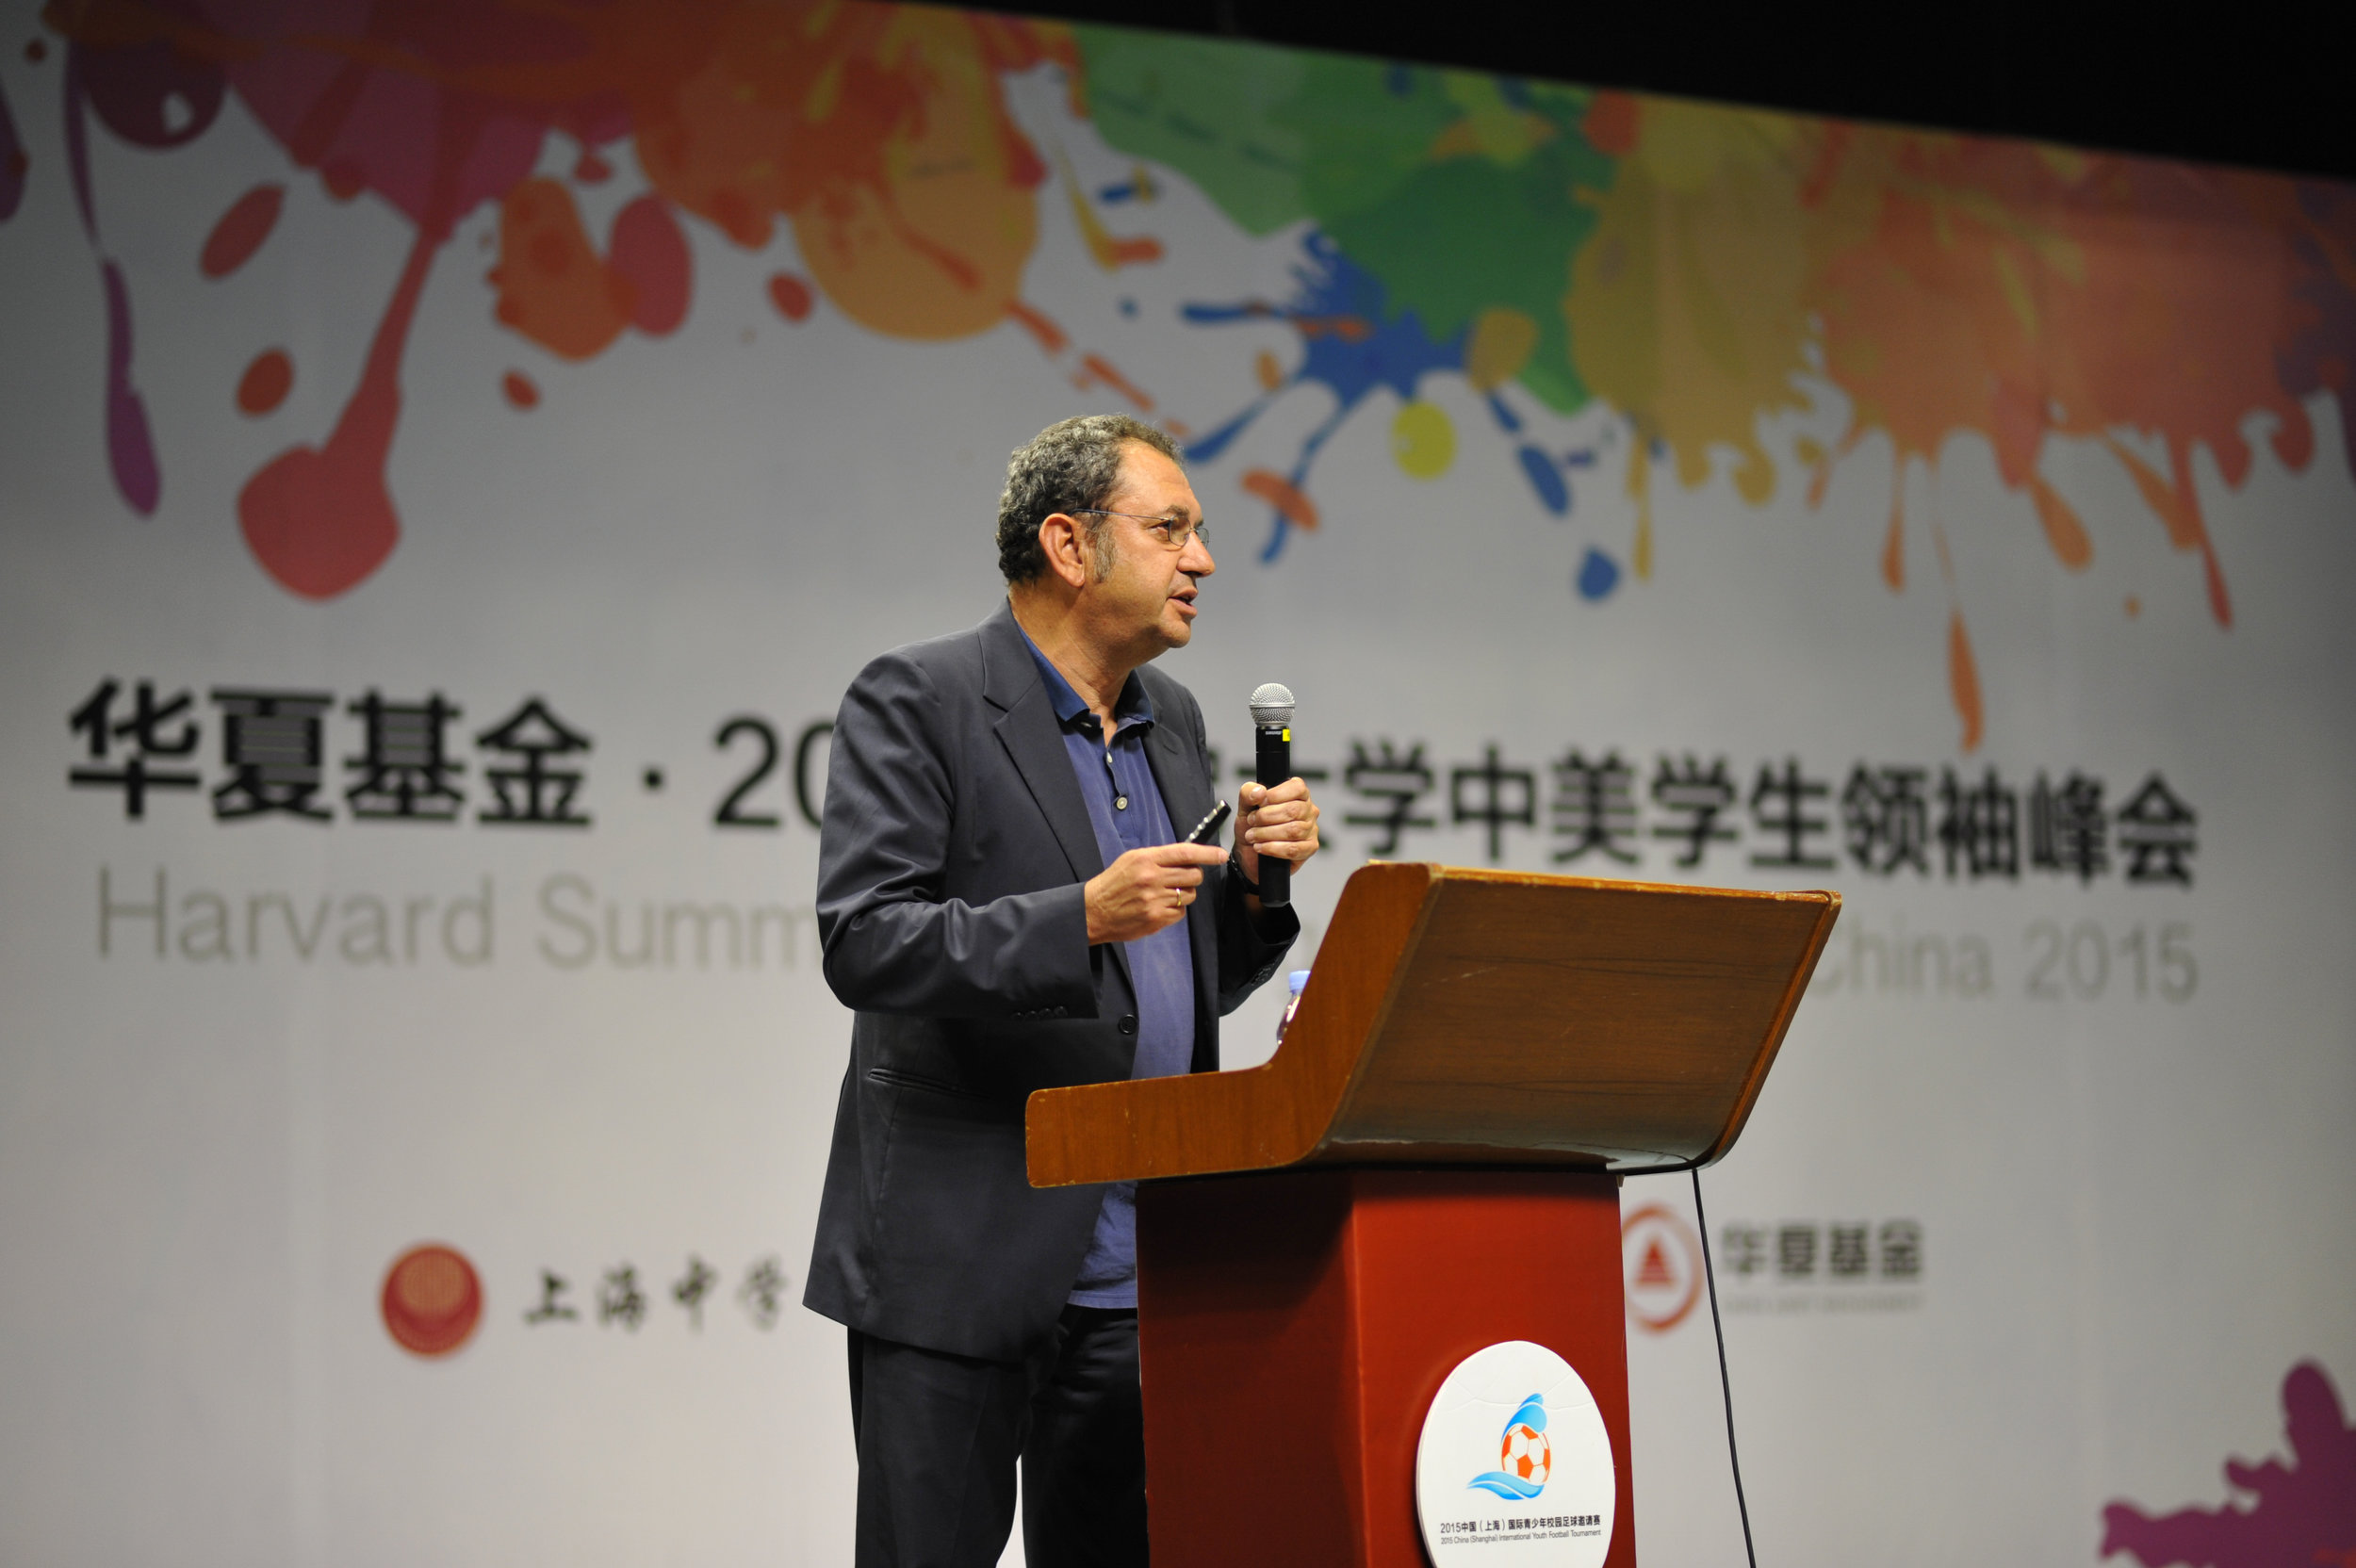 HSYLC - Held simultaneously in Beijing, Shanghai, and Hangzhou, the HAUSCR Summit for Young Leaders in China (HSYLC) is the most prominent educational conference in China reaching 1000+ high school students each summer.Learn More →